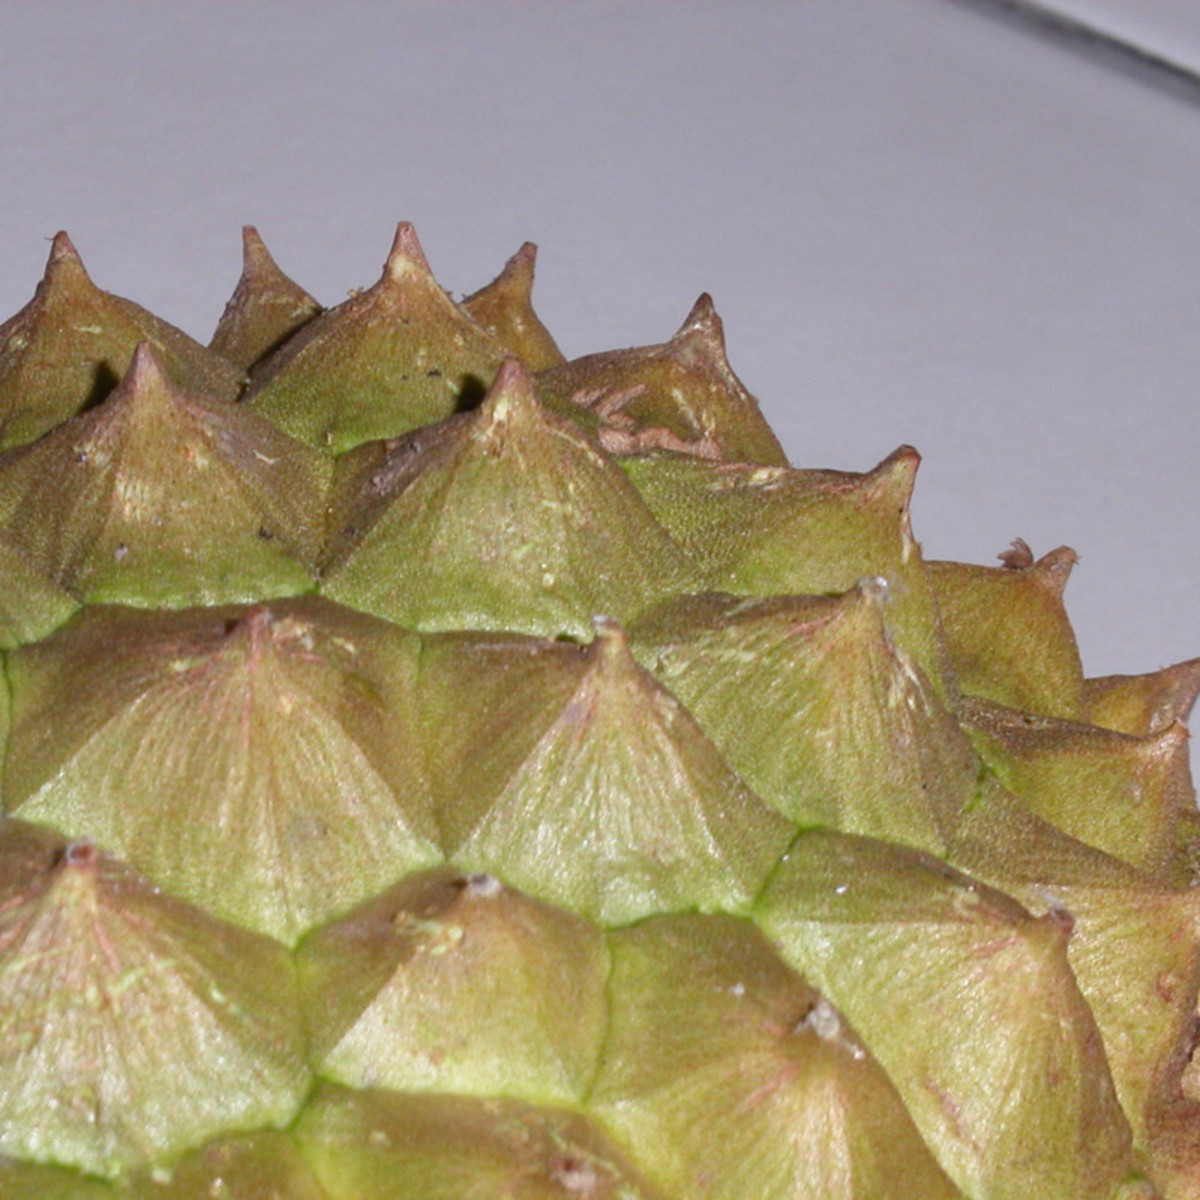 The thorny durian husk